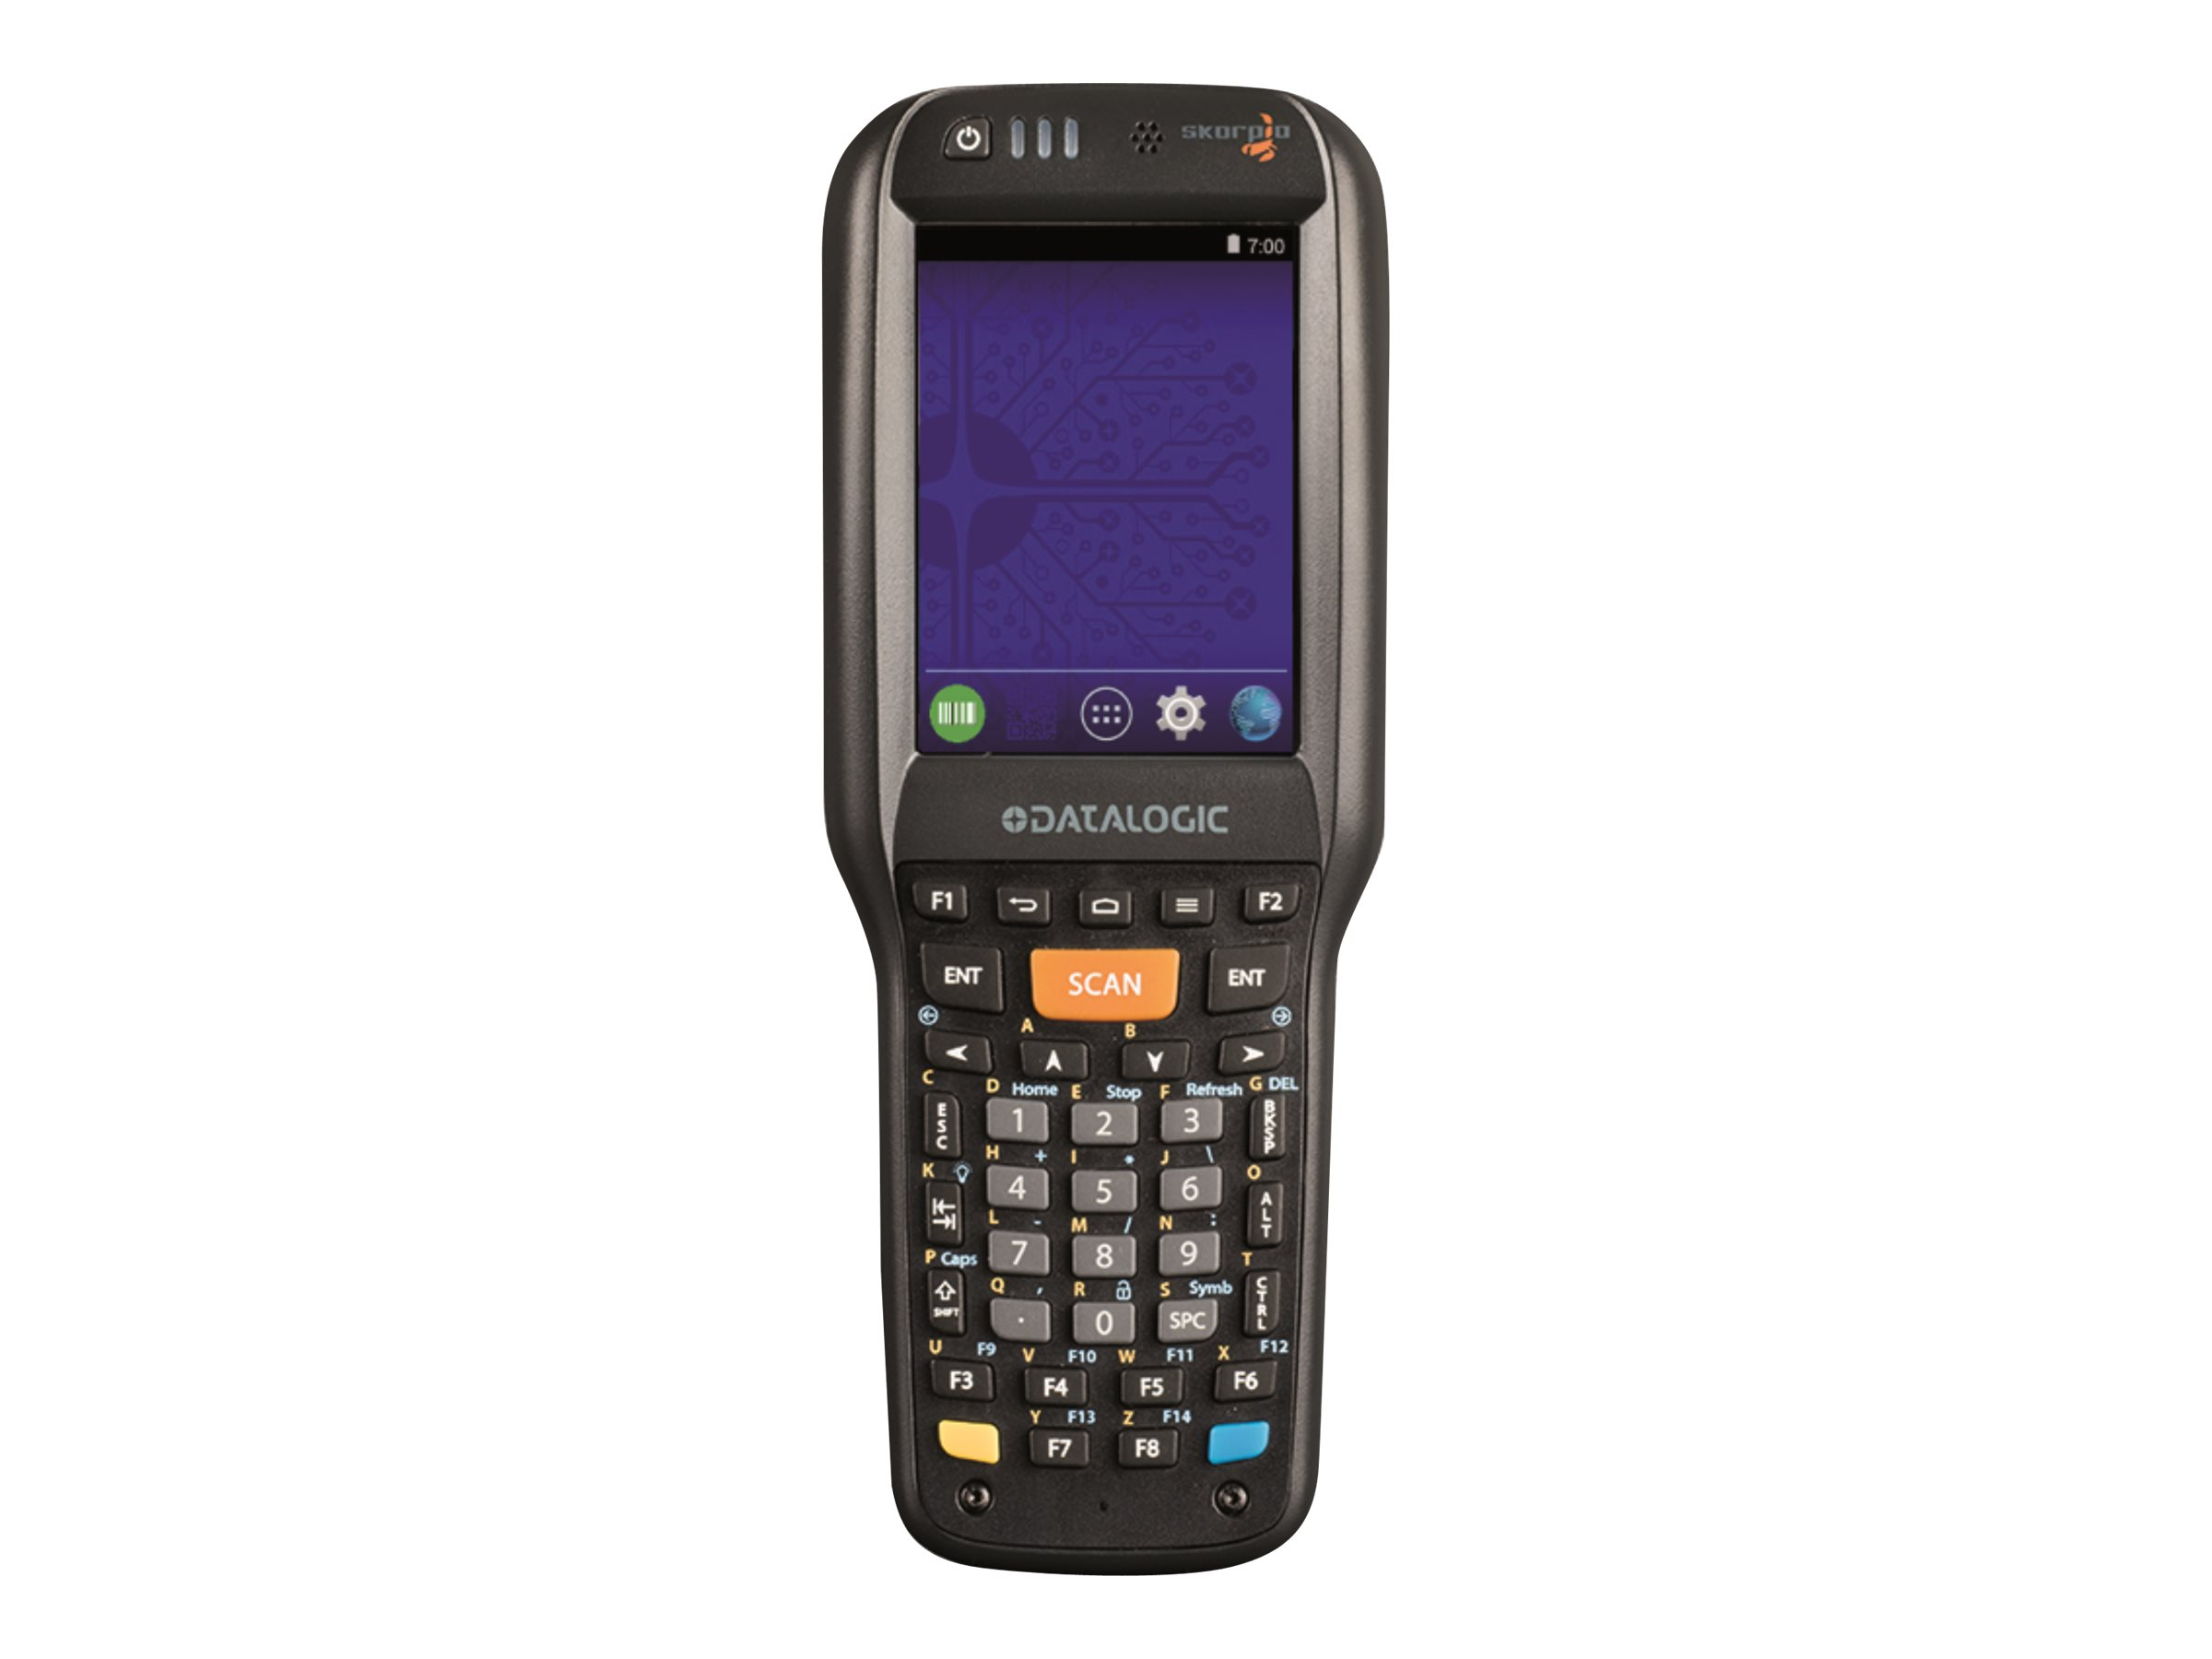 "Datalogic Skorpio X4 - Datenerfassungsterminal - robust - Win Embedded Compact 7 - 8 GB - 8.1 cm (3.2"")"